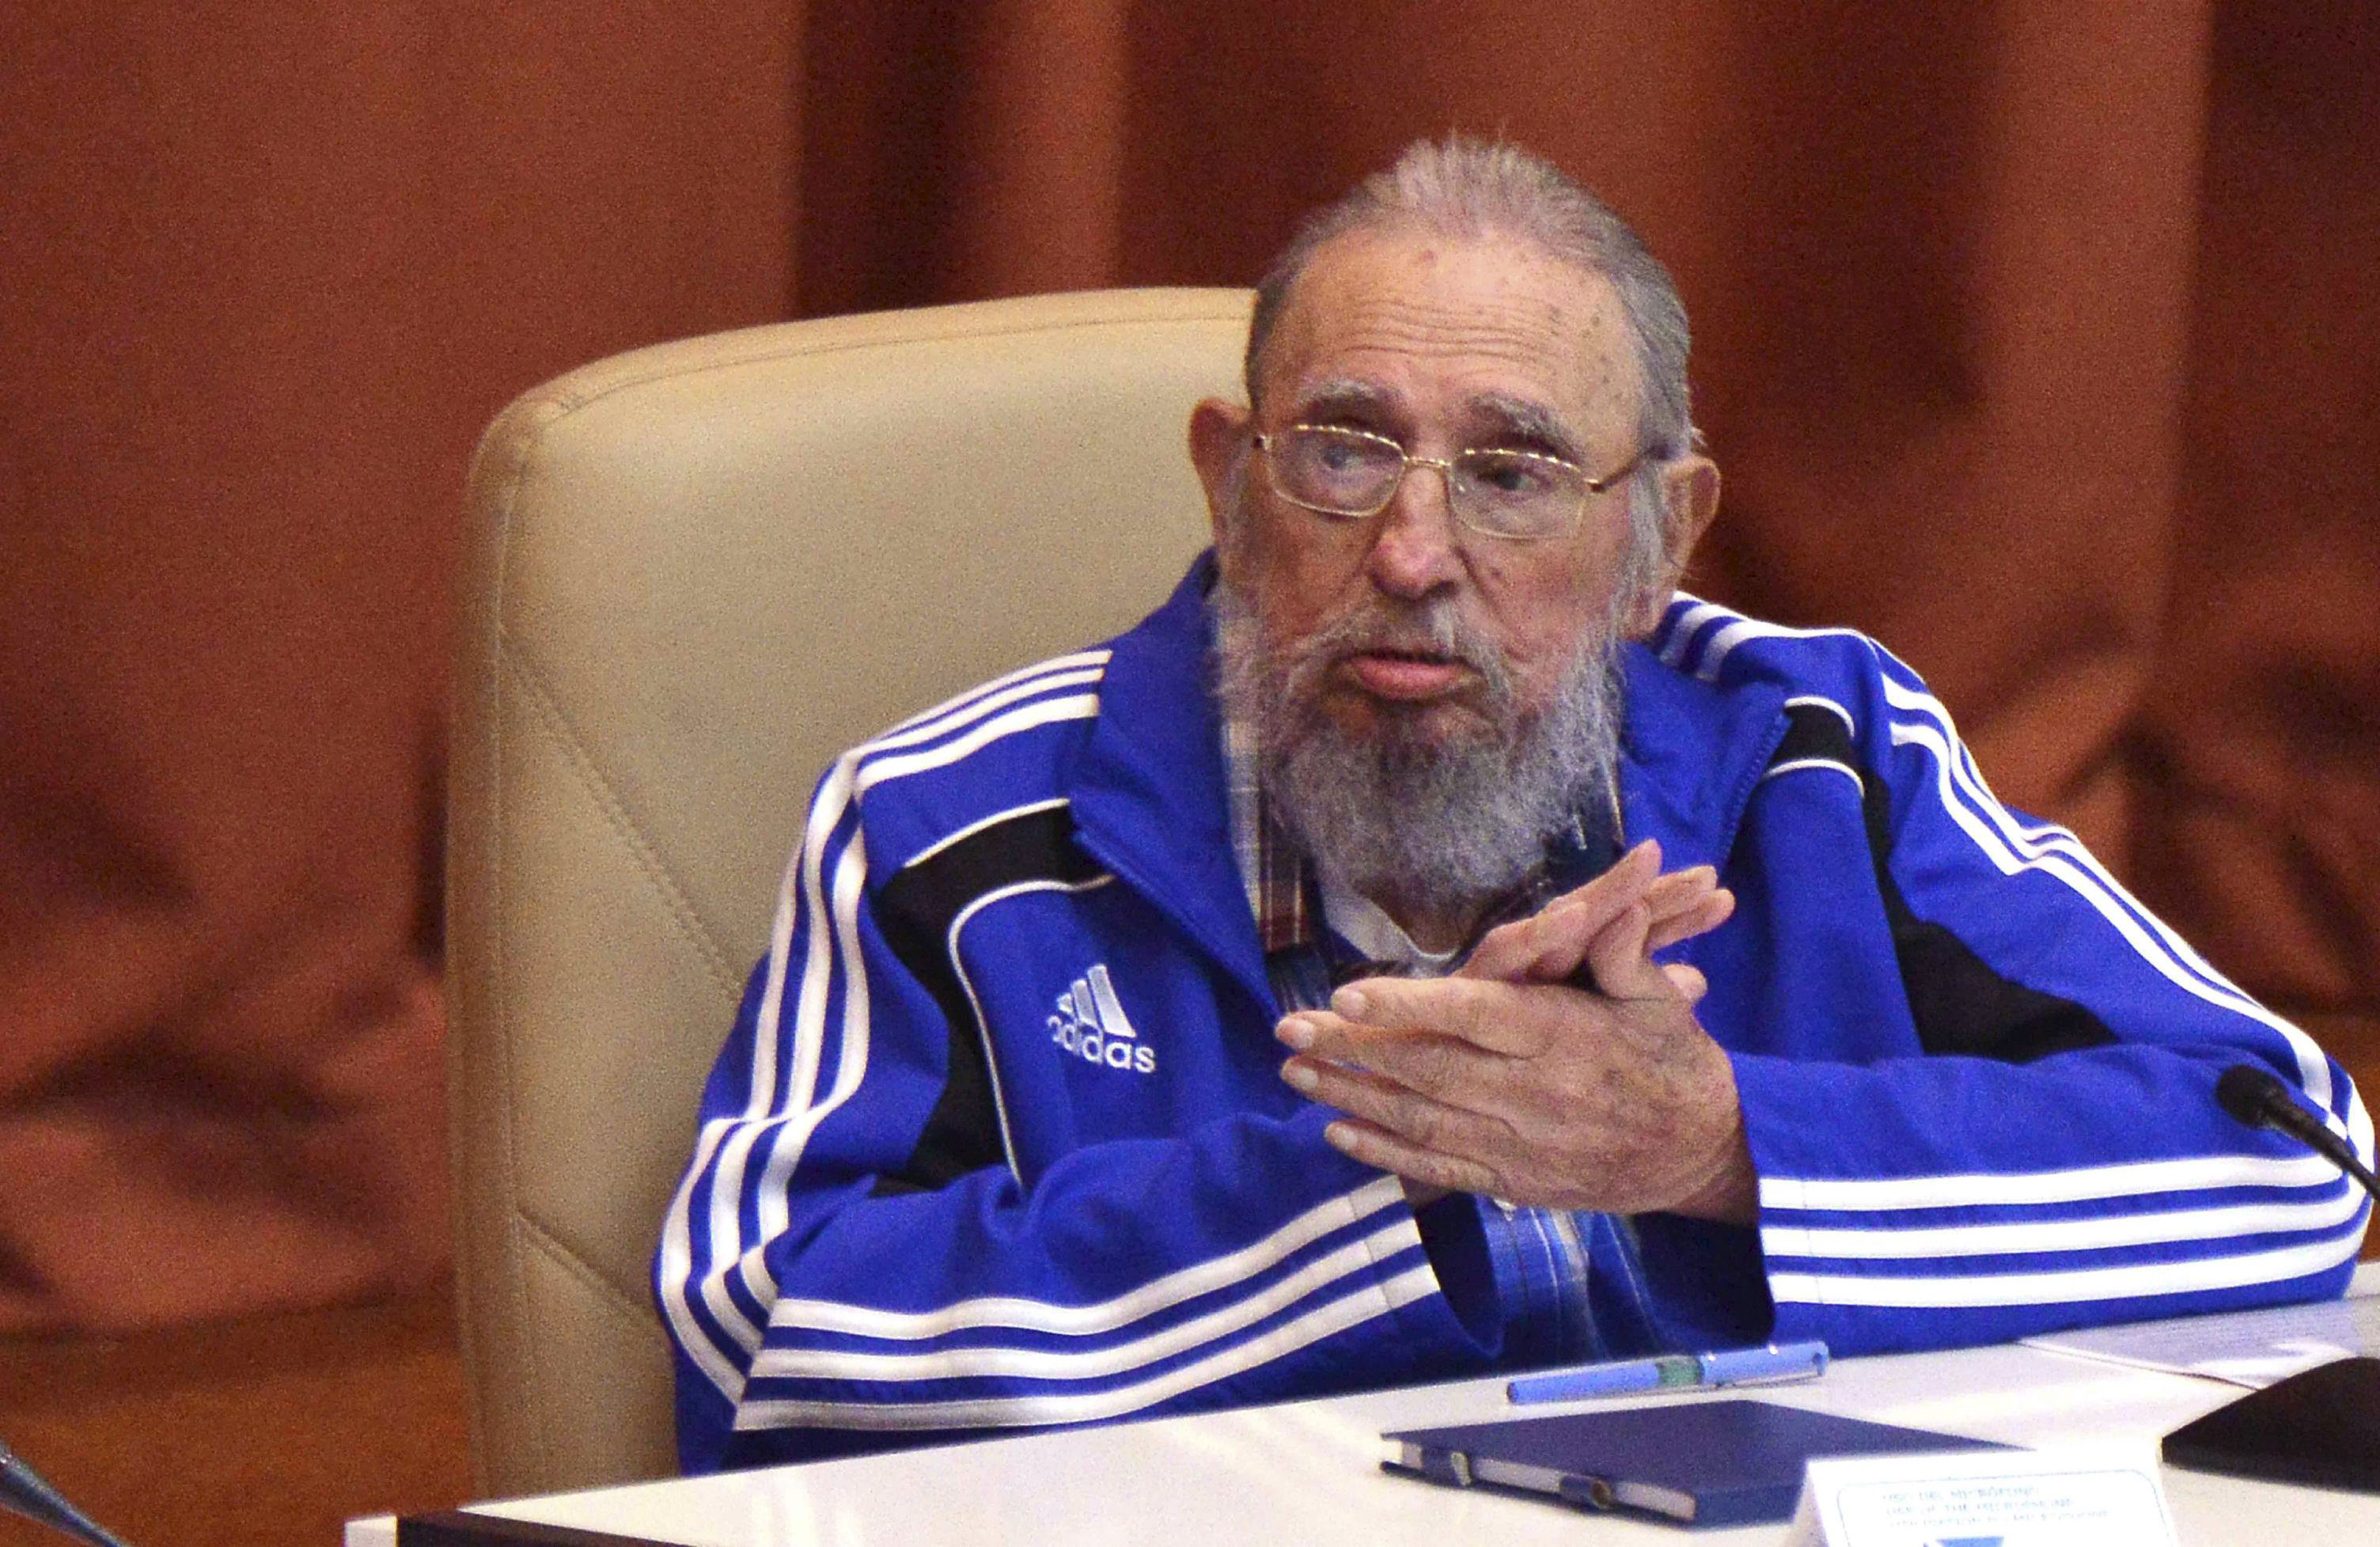 Cuba's former president Fidel Castro attends the closing ceremony of the seventh Cuban Communist Party (PCC) congress in Havana, Cuba, in this handout received April 19, 2016. Omara Garcia/Courtesy of AIN/Handout via REUTERSATTENTION EDITORS - THIS IMAGE WAS PROVIDED BY A THIRD PARTY. EDITORIAL USE ONLY.      TPX IMAGES OF THE DAY